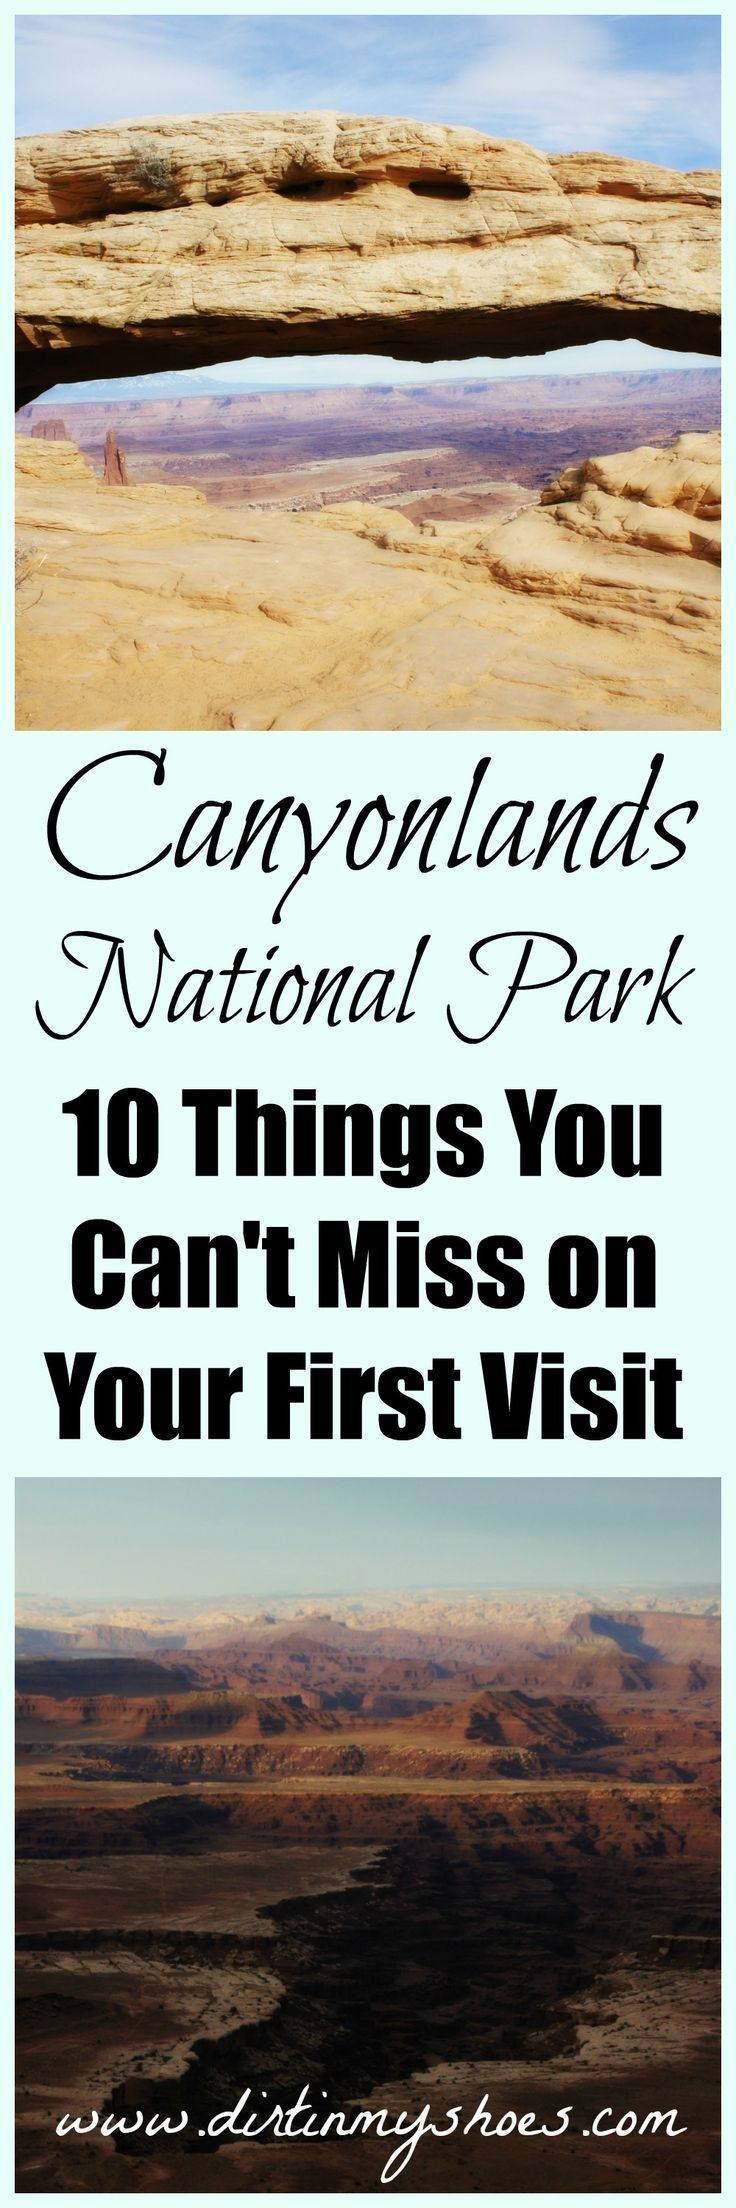 Canyonlands National Park | Many people do not know what Canyonlands National Park has to offer. Here is your guide to get the most out of your visit...or if you are not planning a visit, maybe I can persuade you!